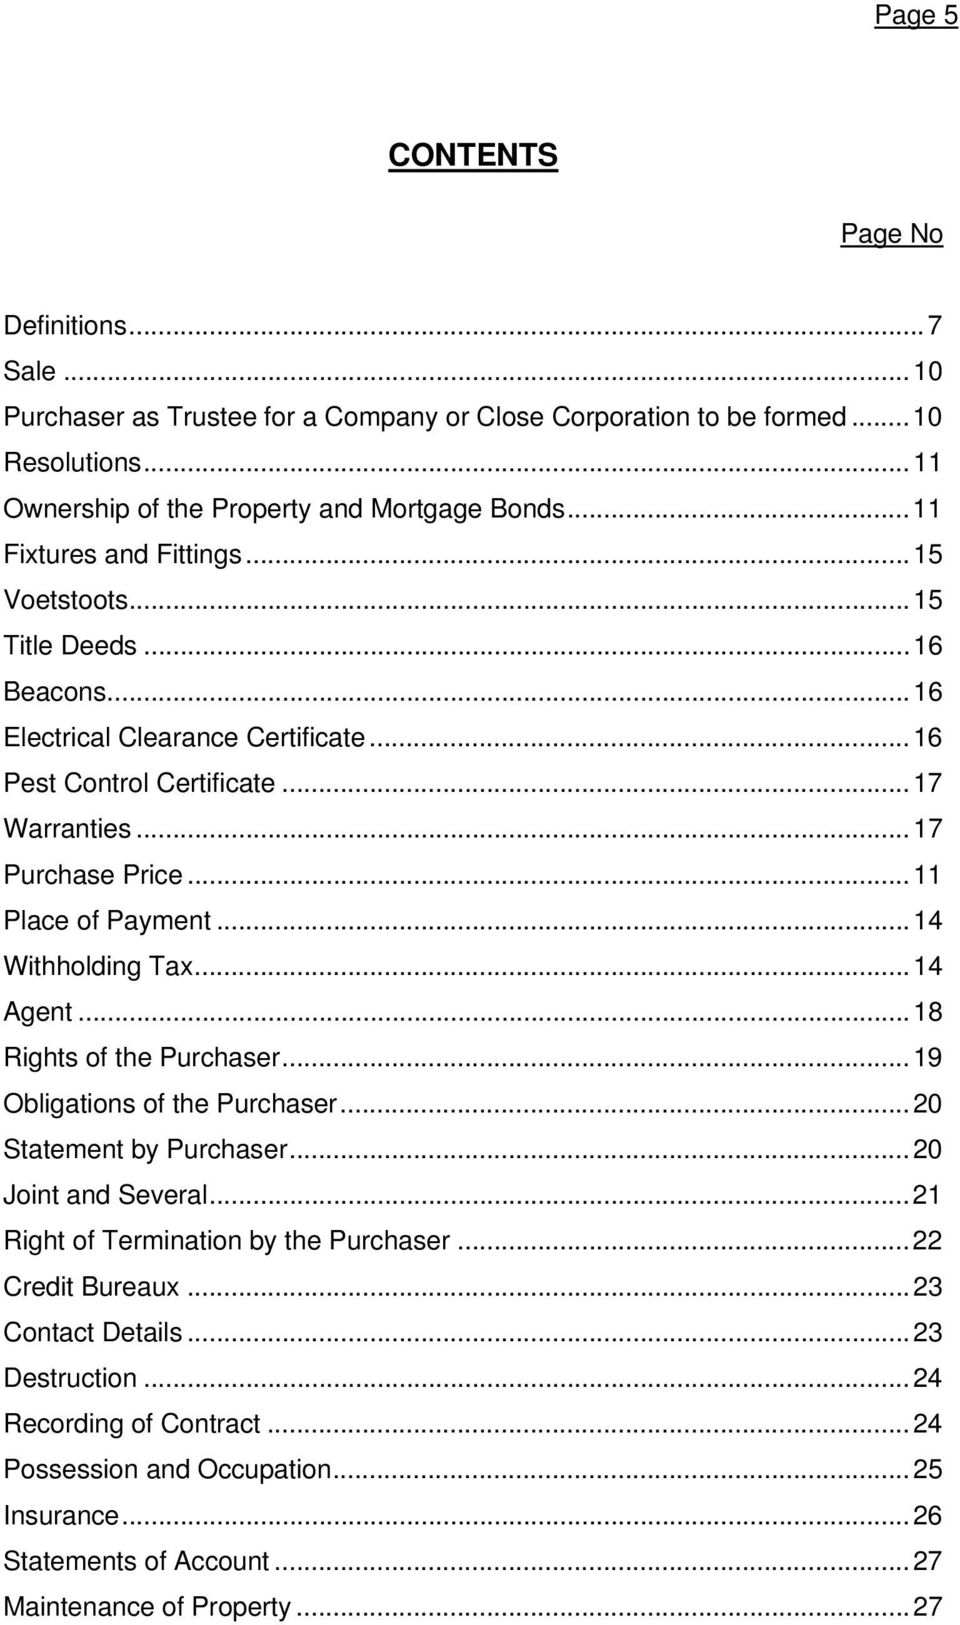 ..11 Place of Payment...14 Withholding Tax...14 Agent...18 Rights of the Purchaser...19 Obligations of the Purchaser...20 Statement by Purchaser...20 Joint and Several.